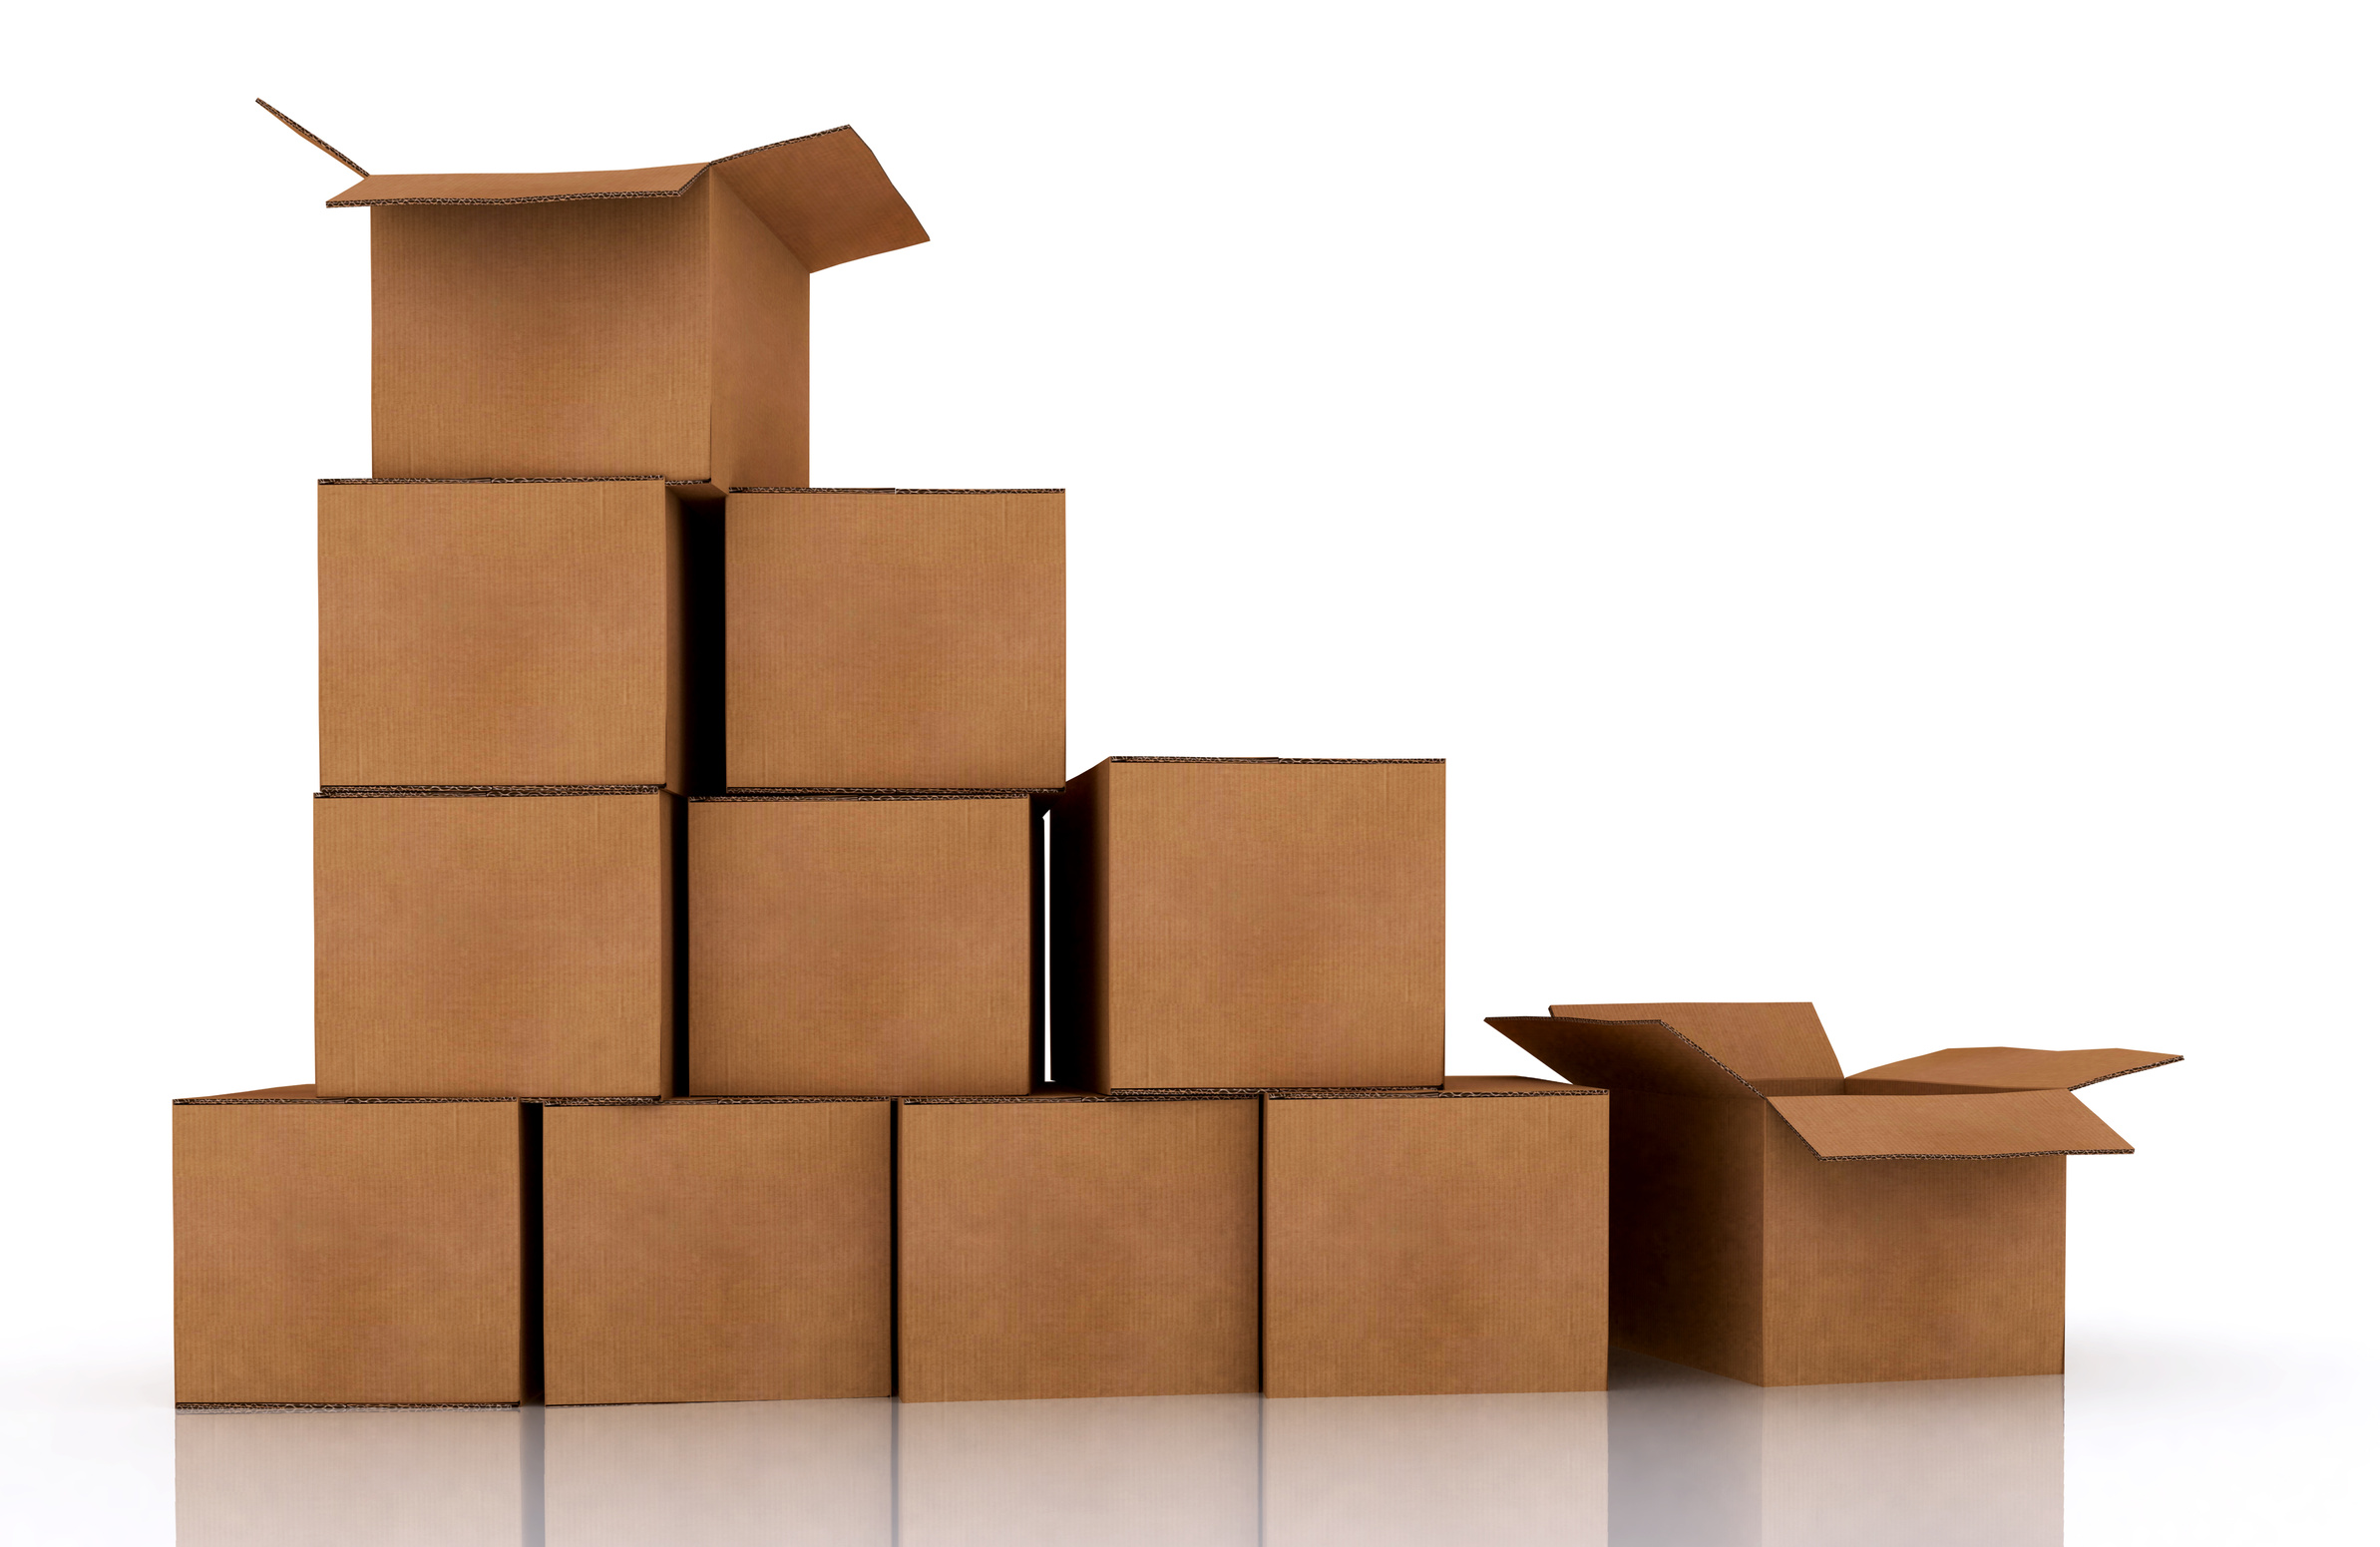 clipart royalty free library Cliparts free download best. Boxes clipart stacked box